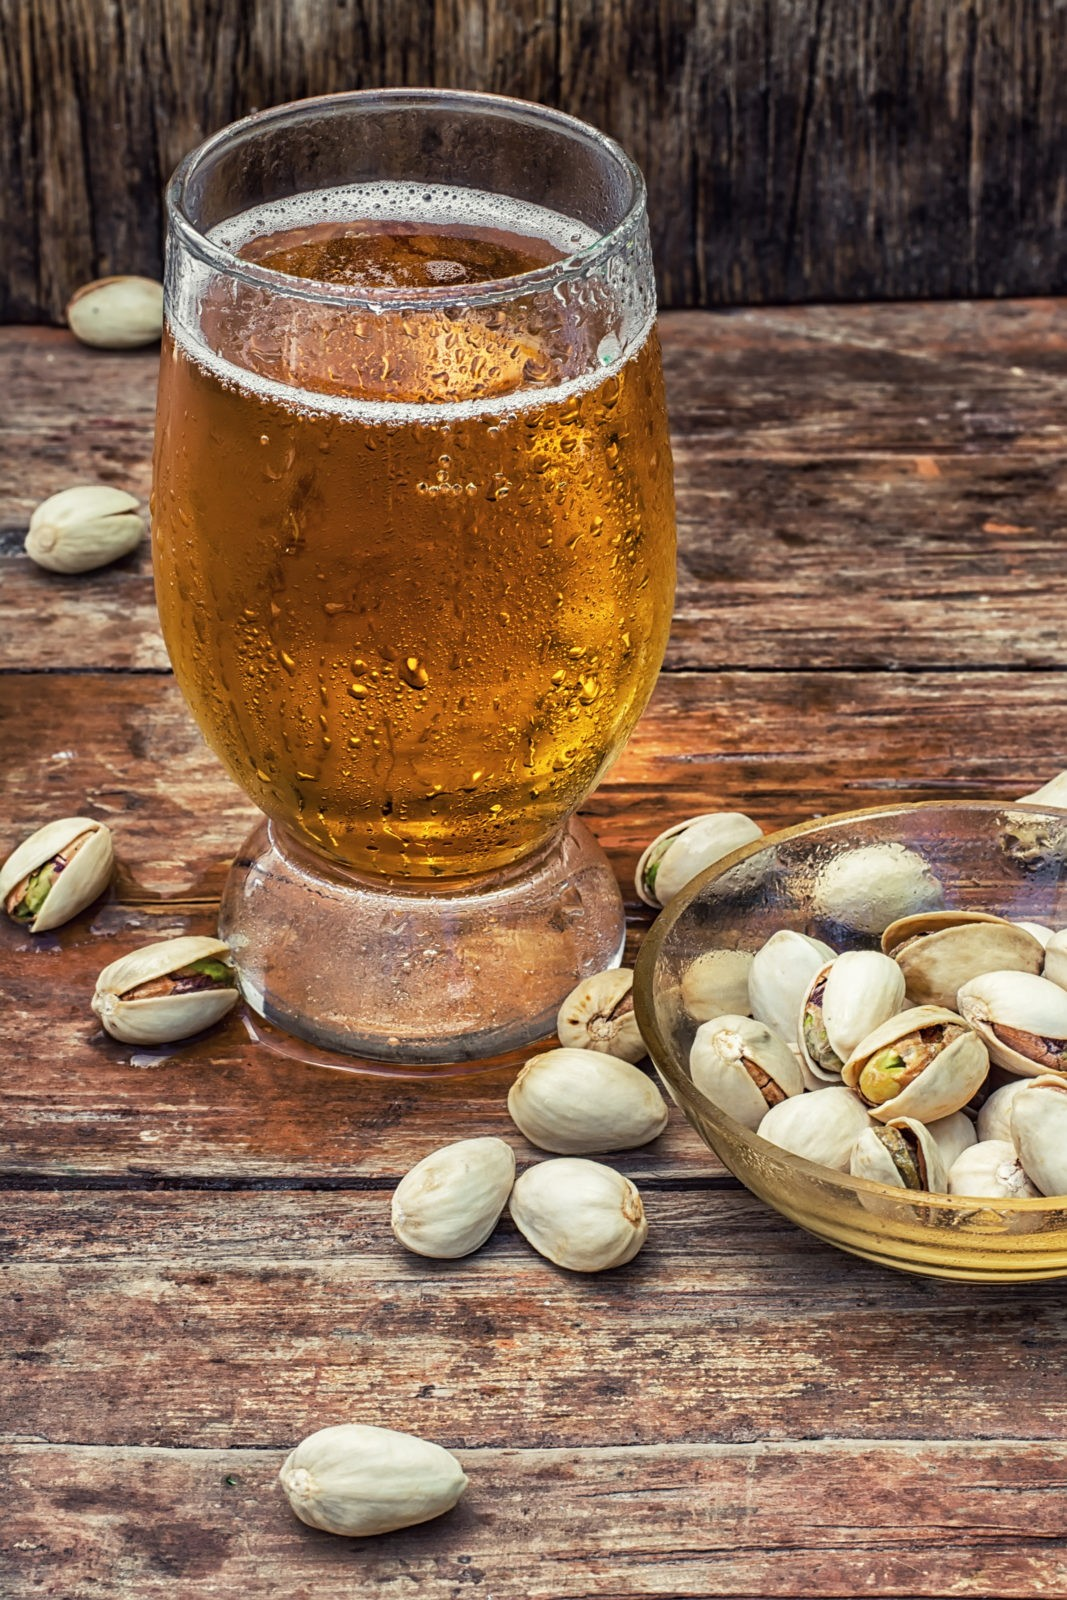 beer light beer on wooden table with saucer of salted pistachios.Photo tinted.Selective focus